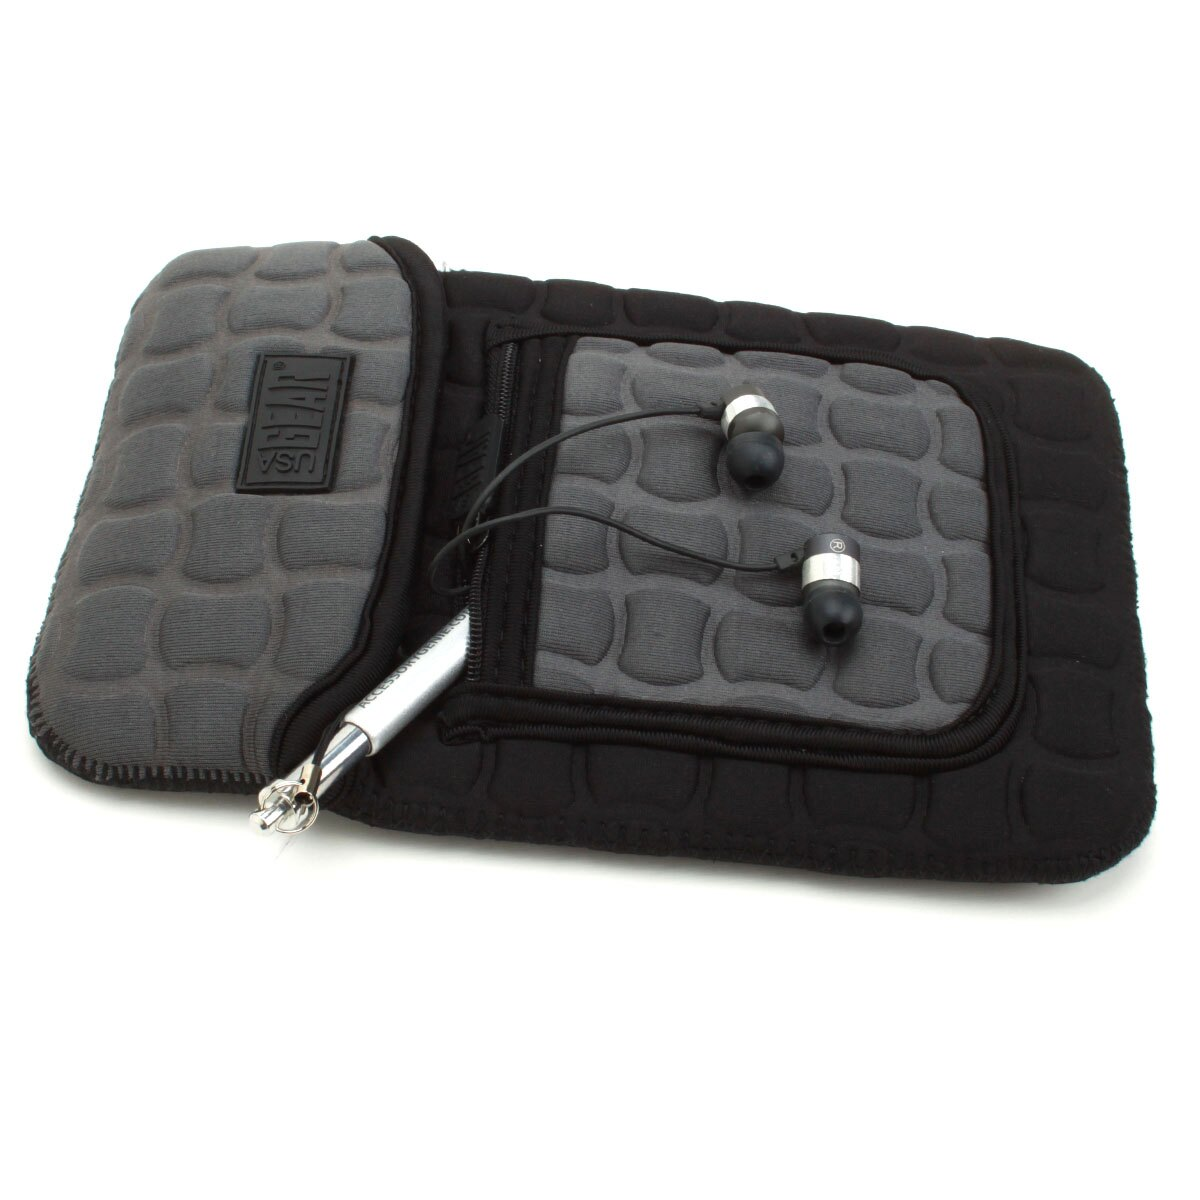 FlexARMOR X Neoprene Tablet Sleeve Case with Carrying Handle , Shock Protection & Accessory Pocket 3